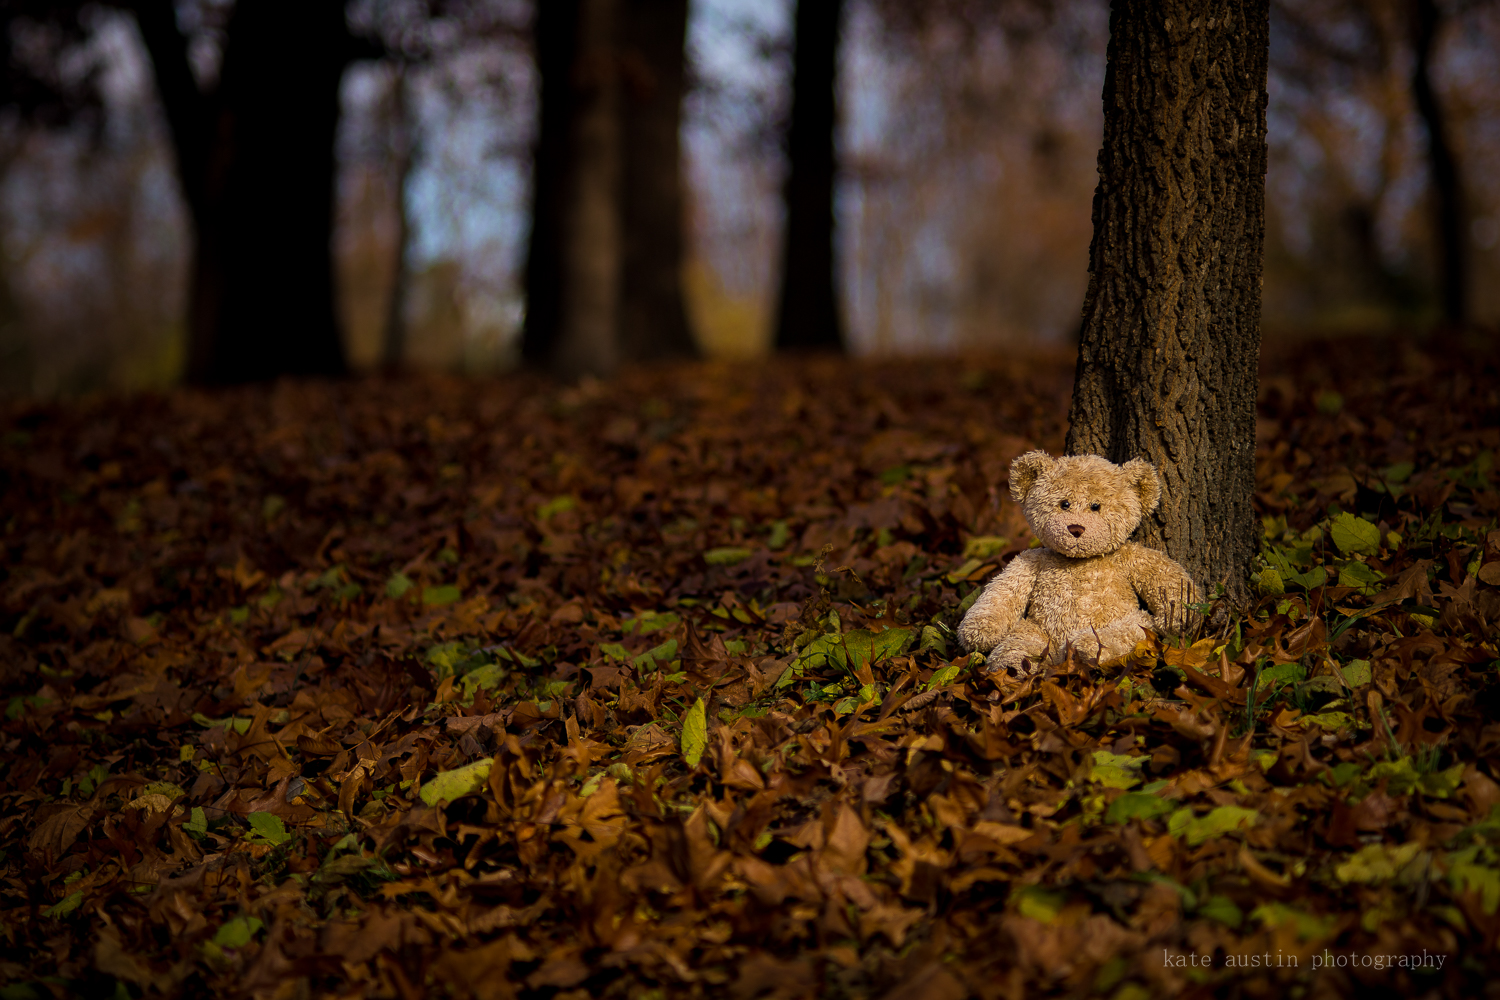 teddy_in_woods20161201--5.jpg